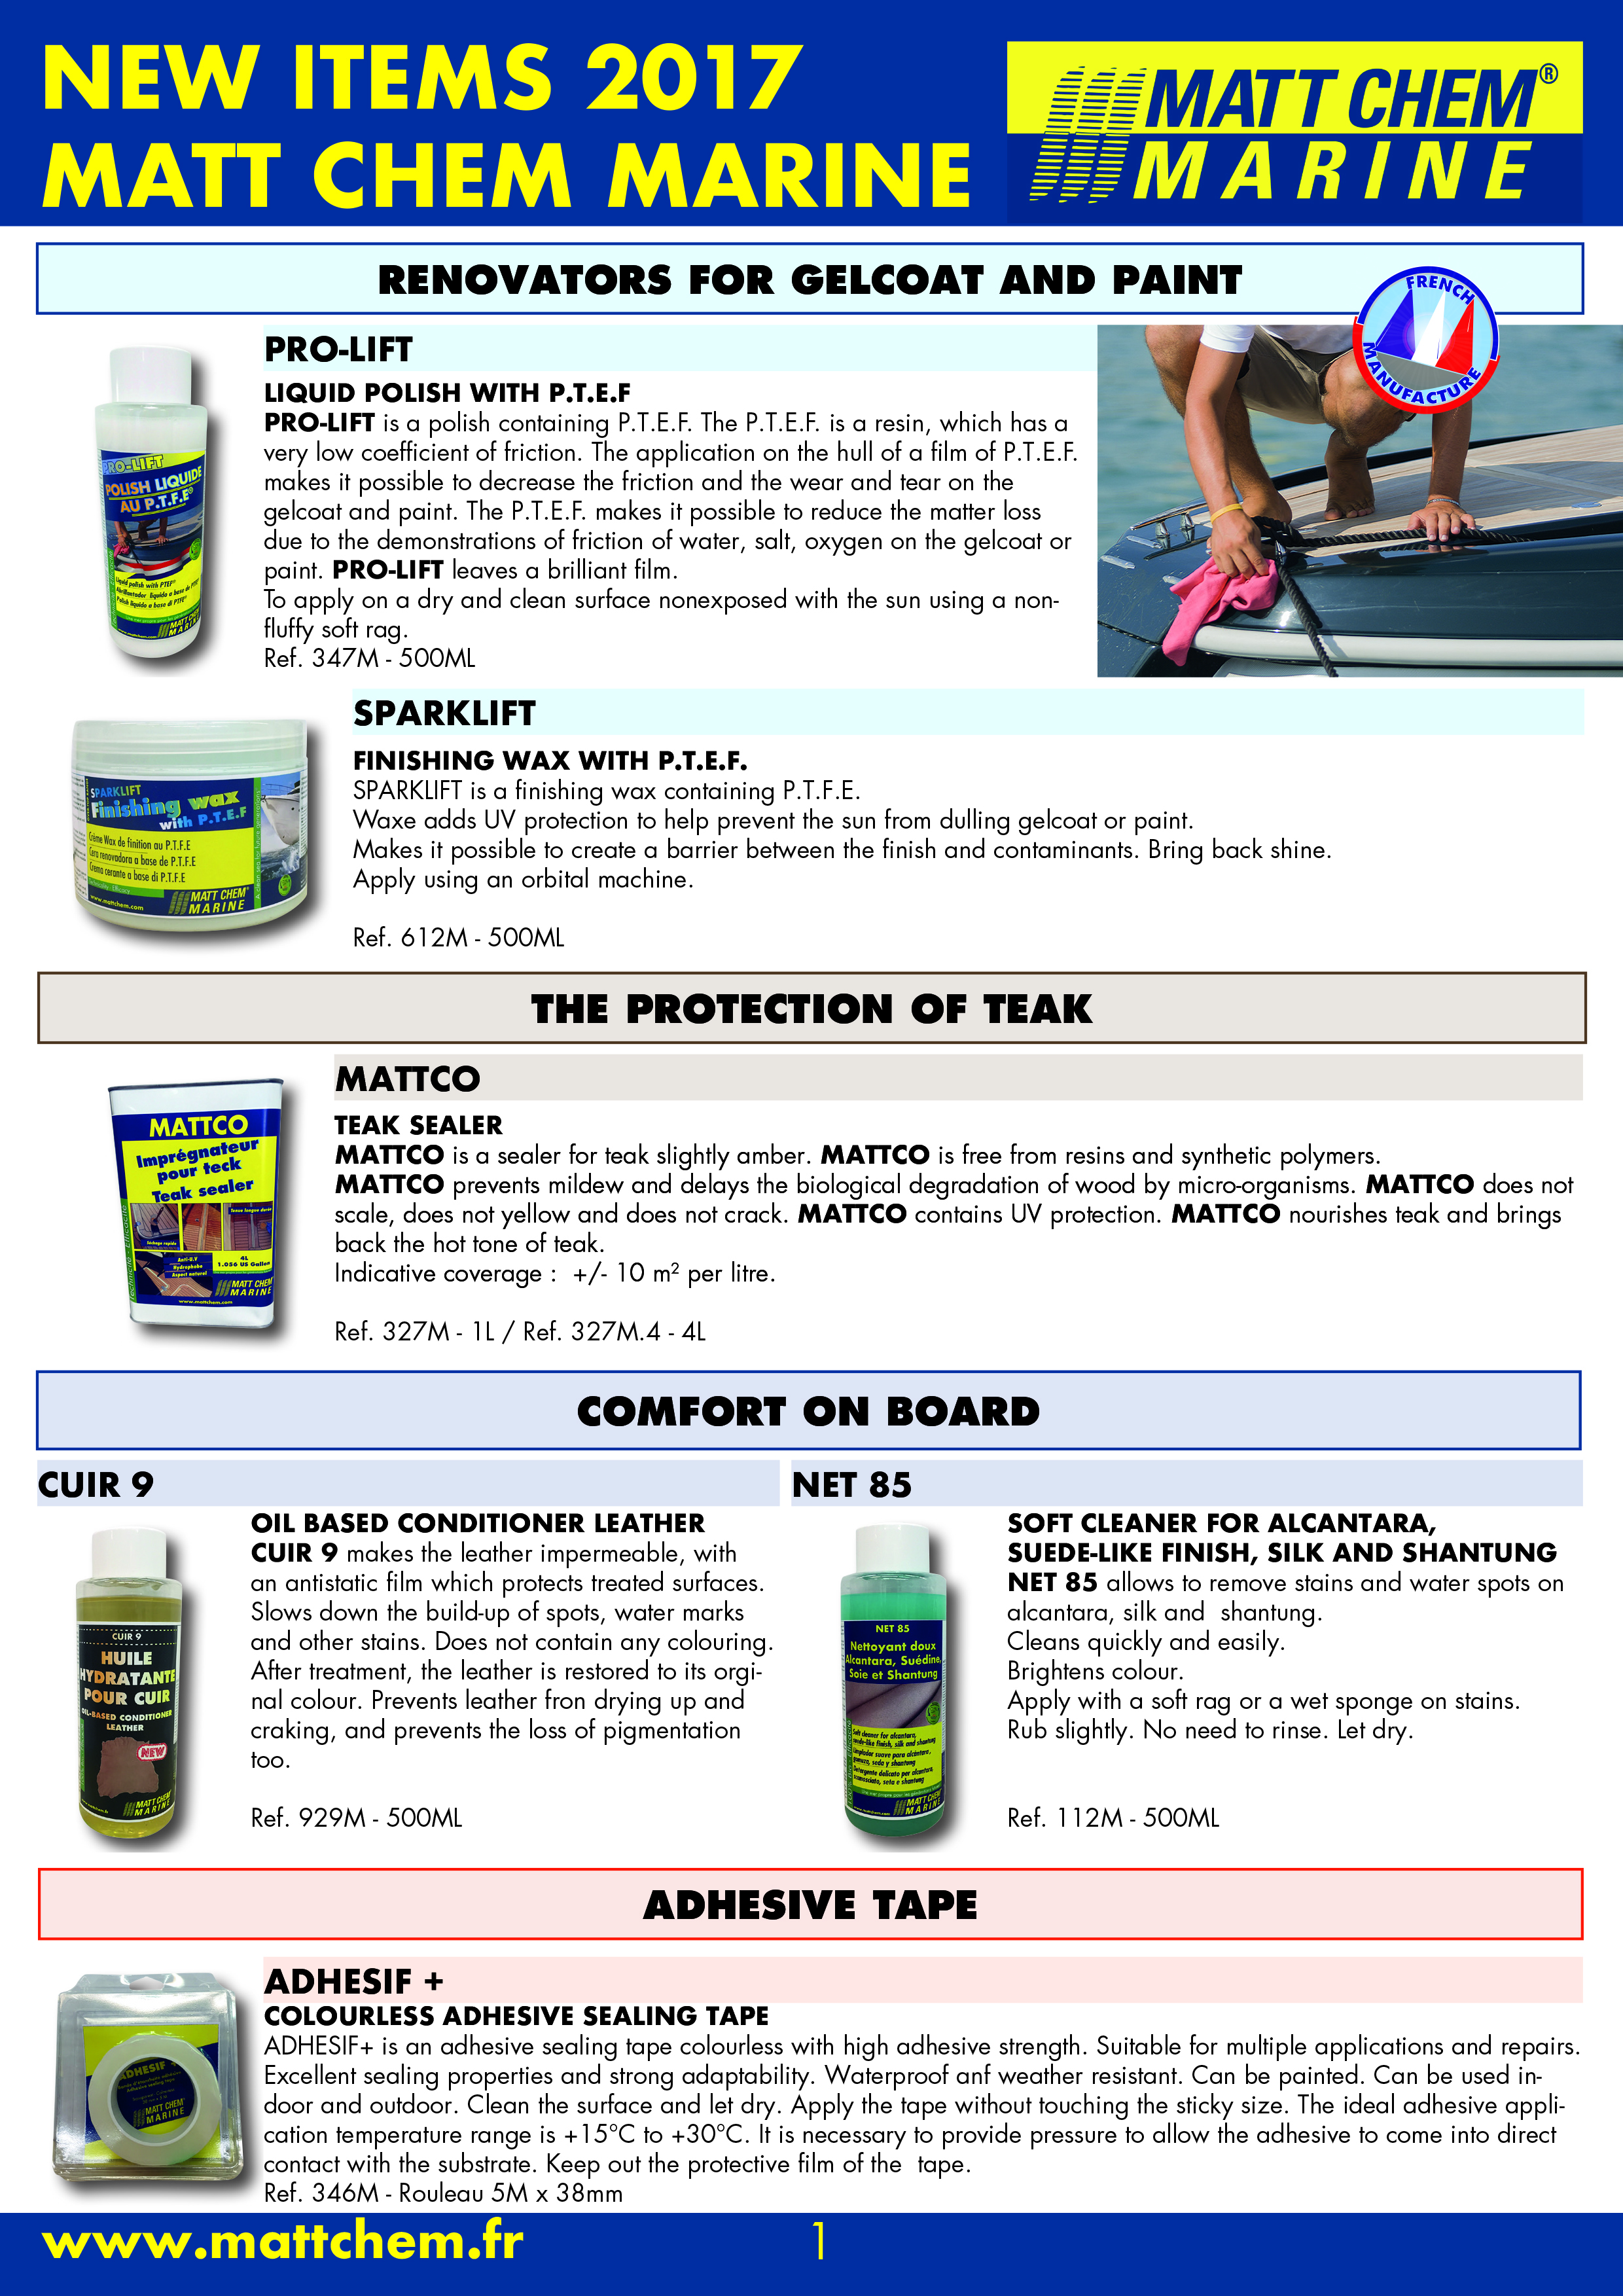 NEW PRODUCTS - PAGE 1